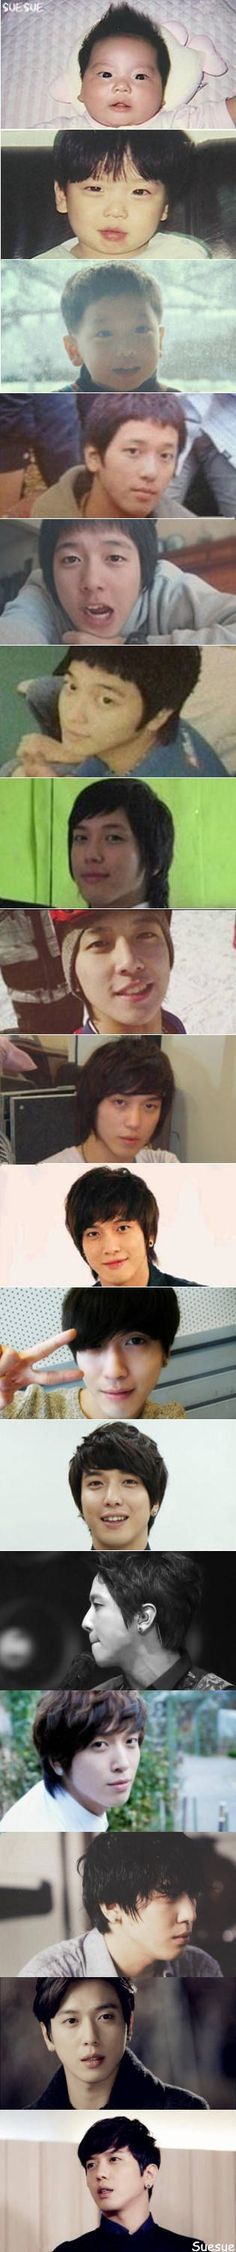 Jung Yong Hwa from baby to present